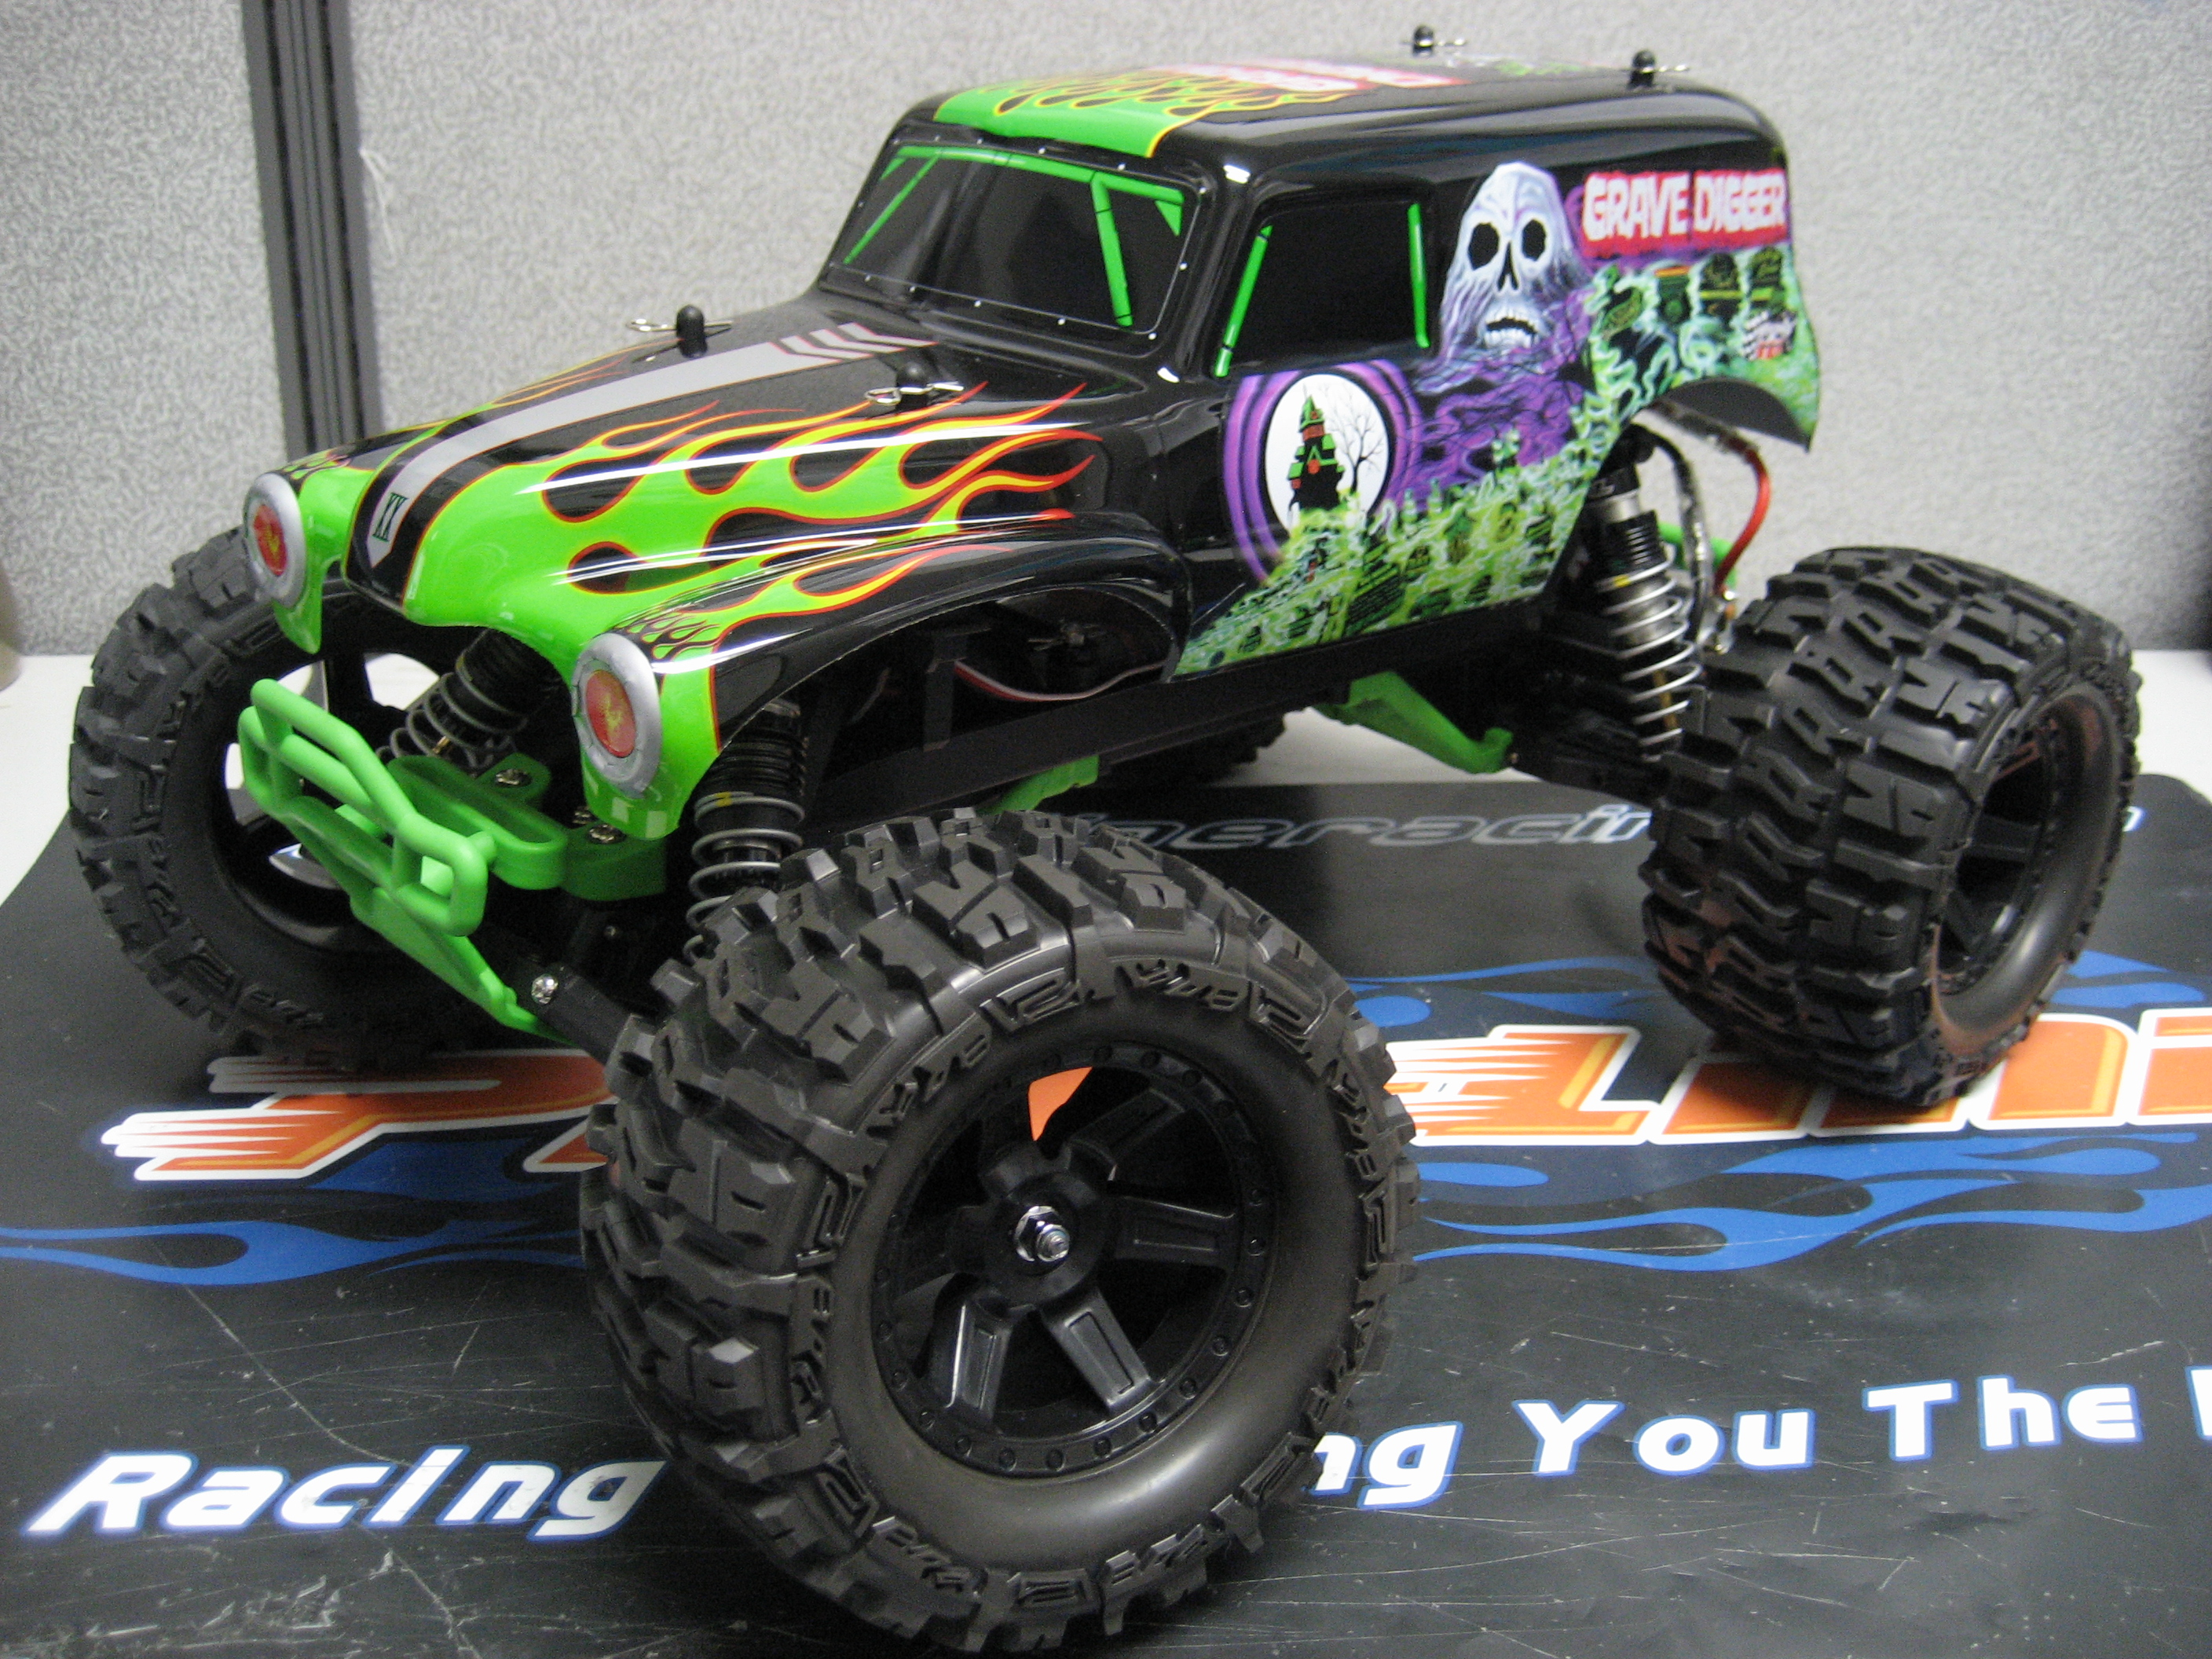 GRAVE DIGGER monster truck 4x4 race racing monster truck fs wallpaper 2816x2112